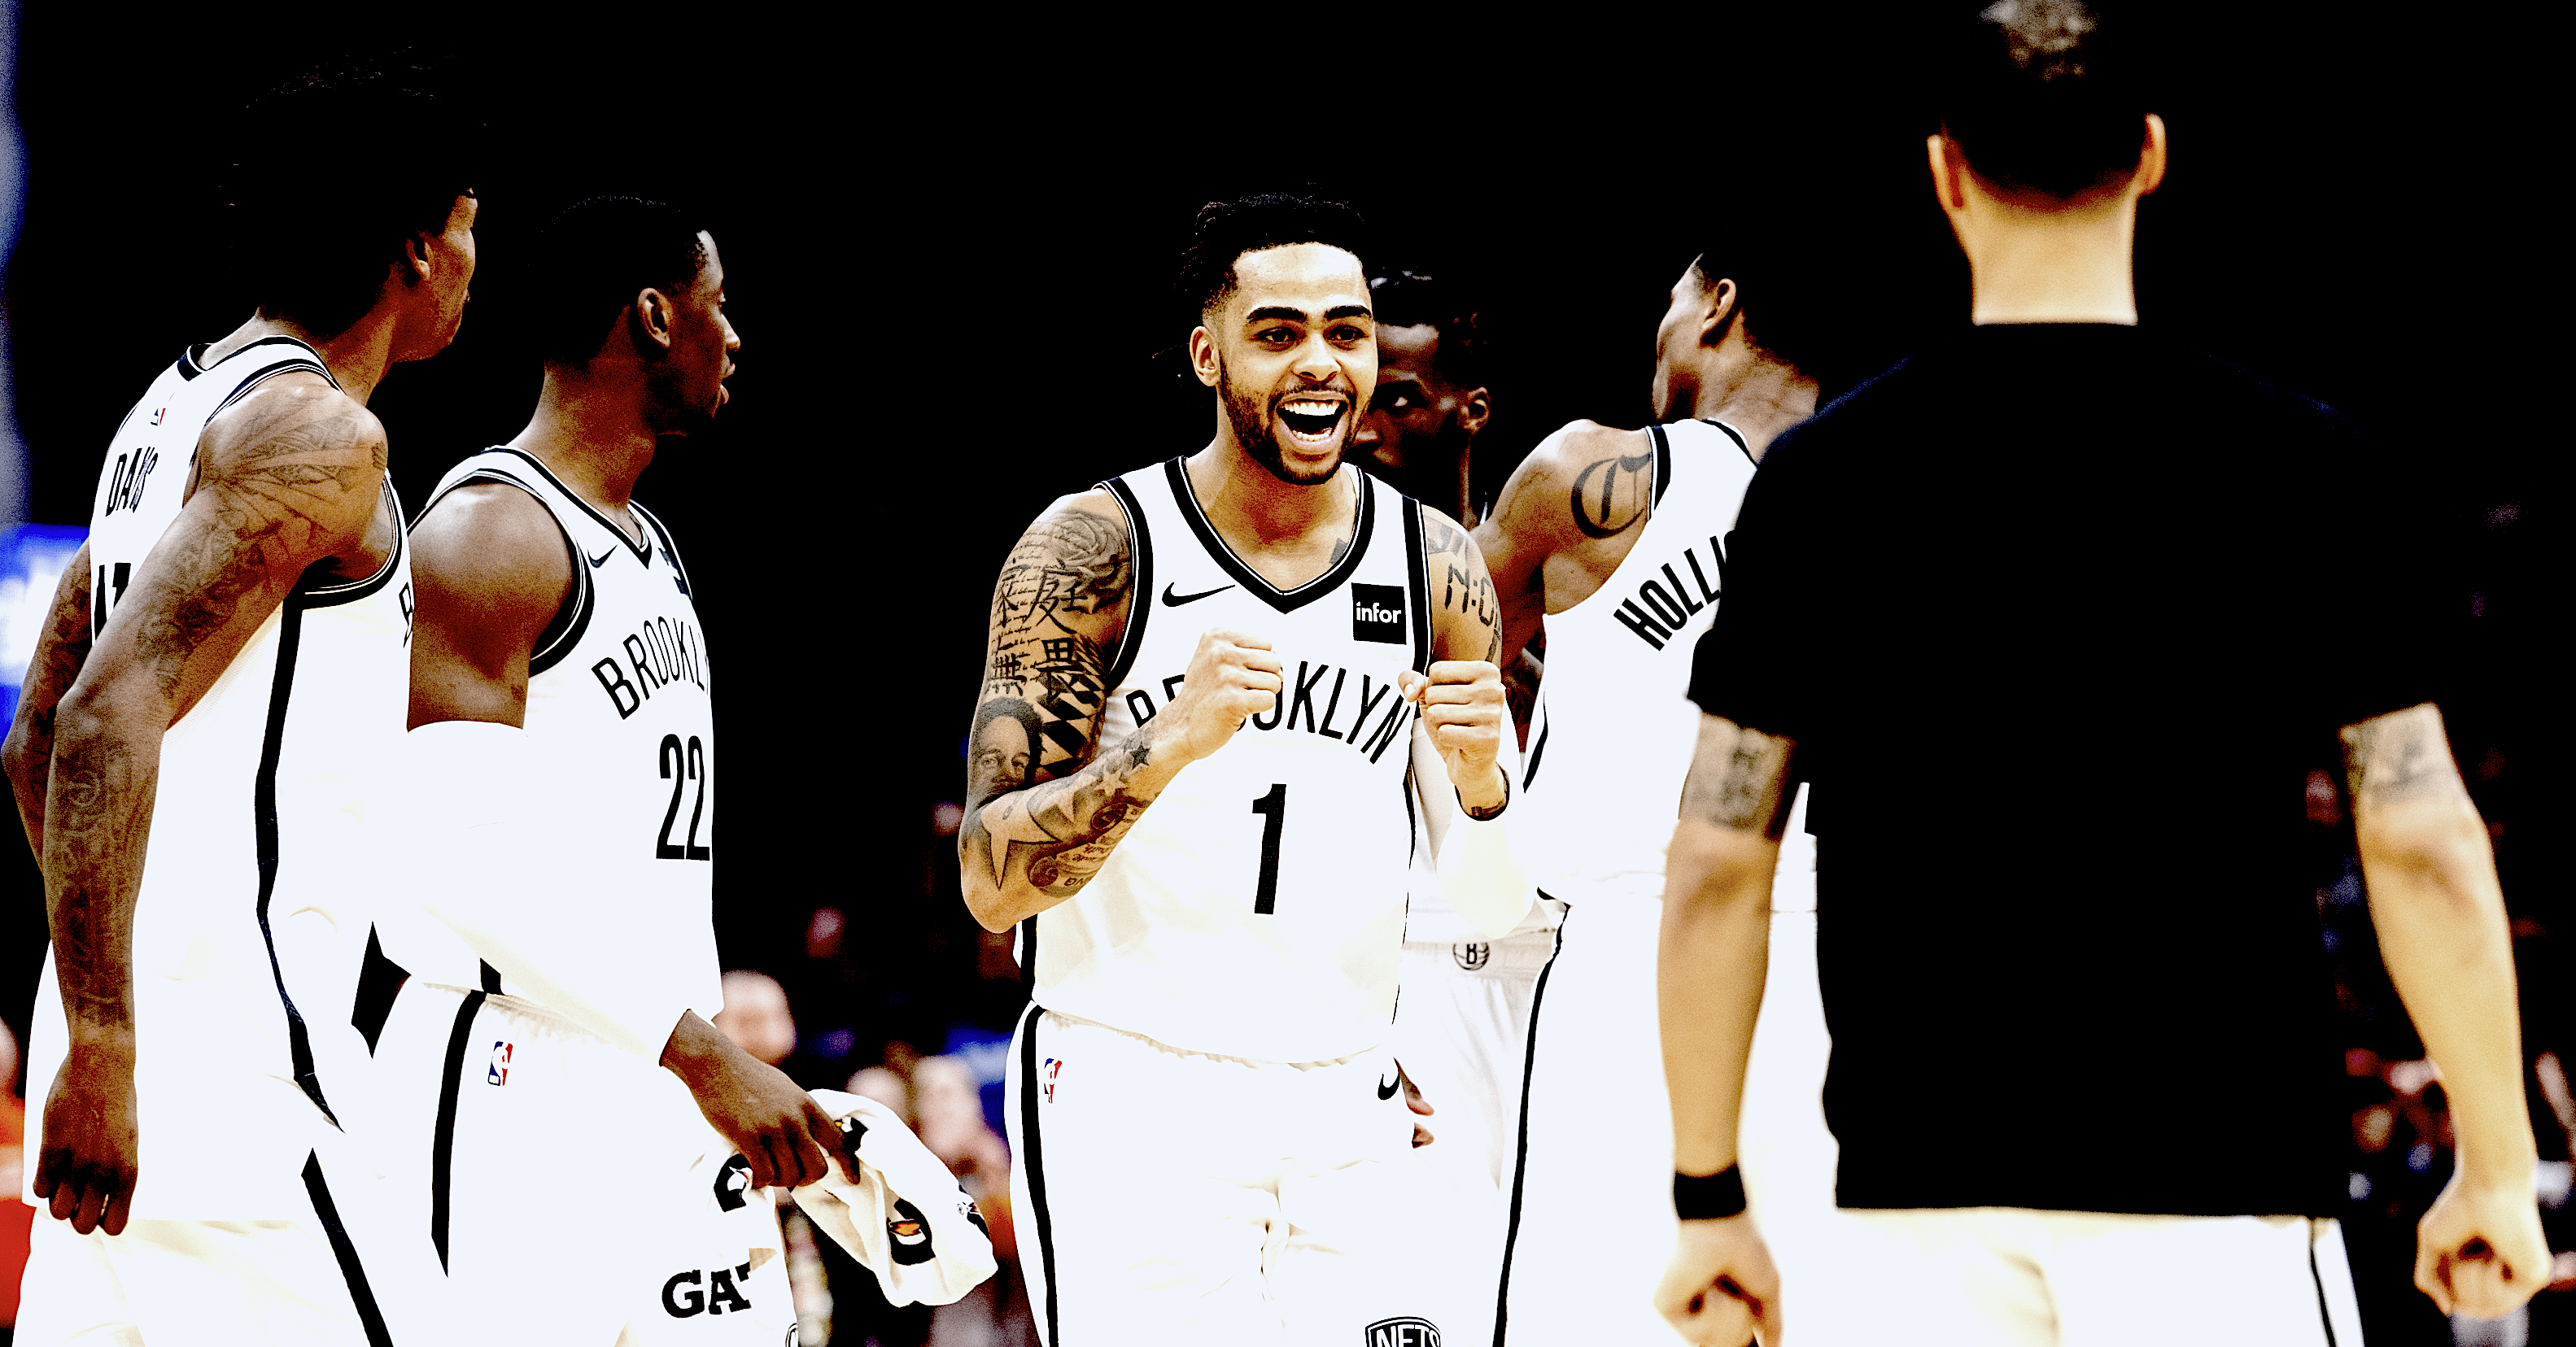 D'Angelo Russell goes berserk in triple overtime win - Basketball Index